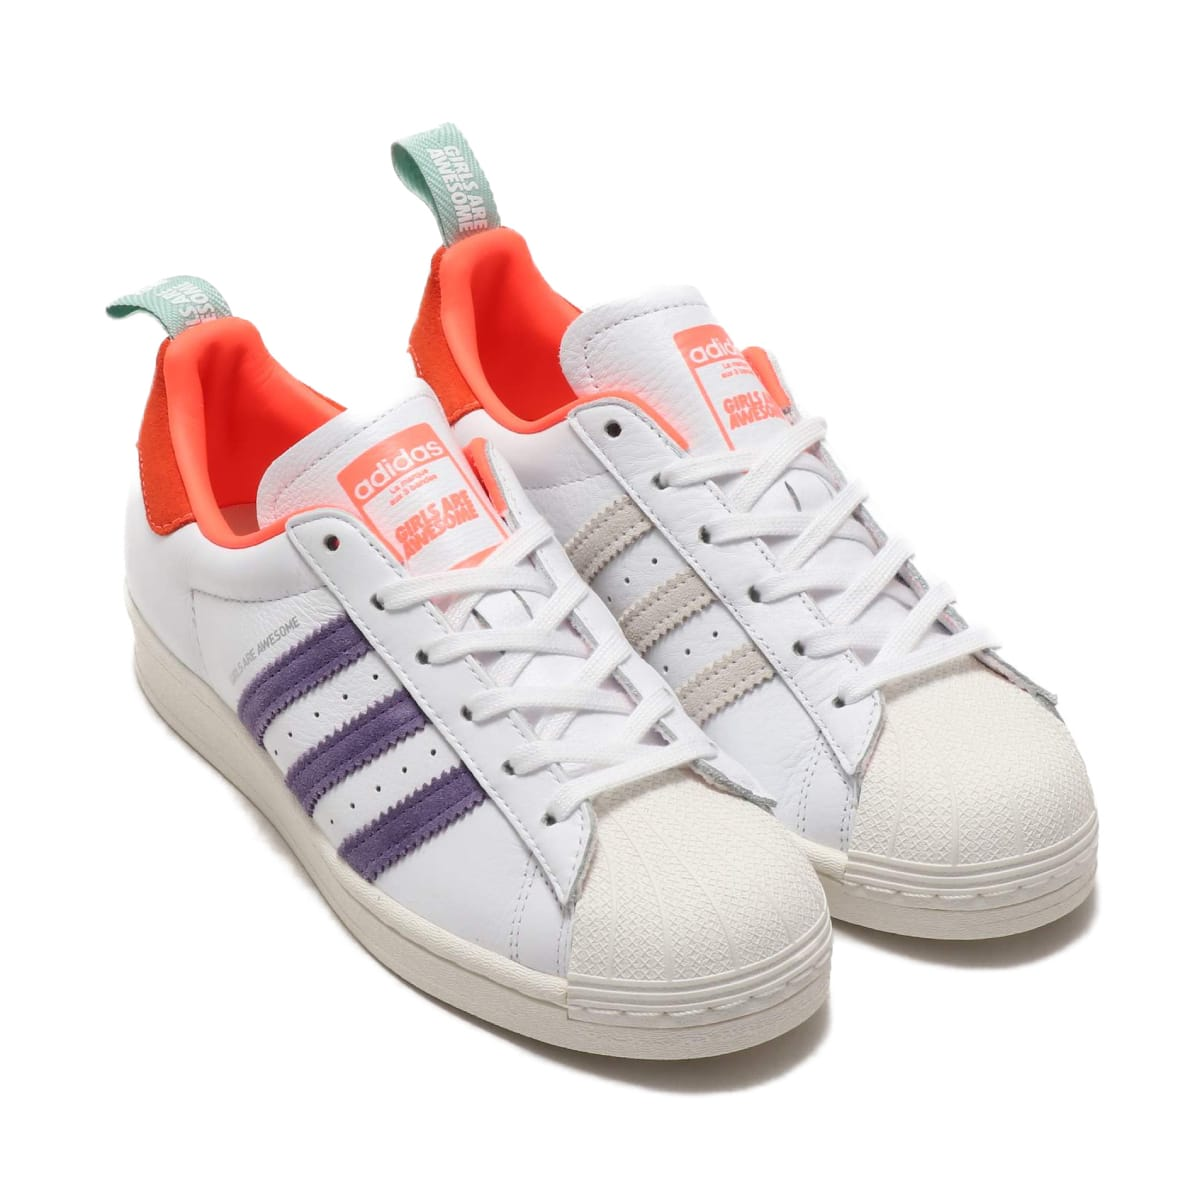 adidas SUPERSTAR FOOTWEAR WHITE/ICE PINK/SIGNAL CORAL 20SS-S_photo_large